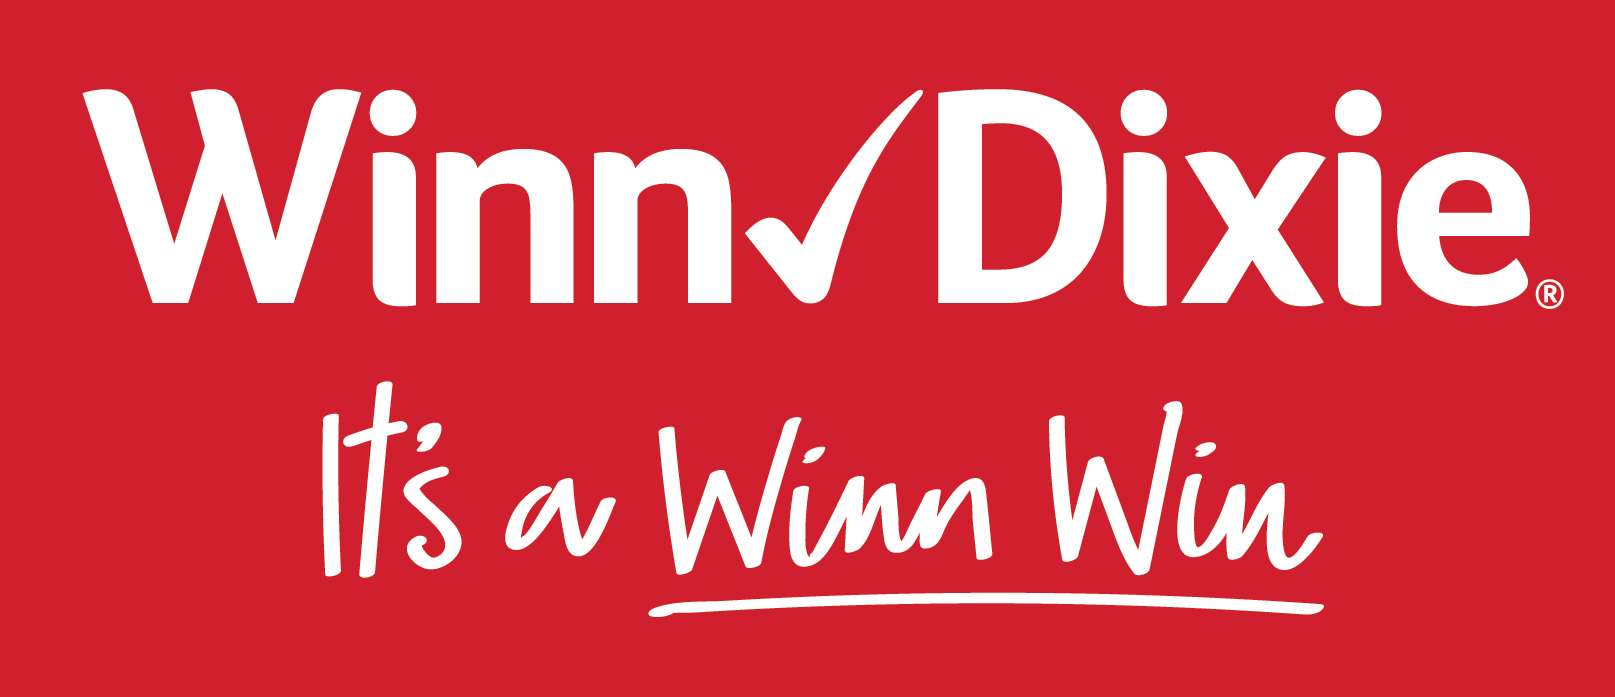 Get YOUR WINN ON!